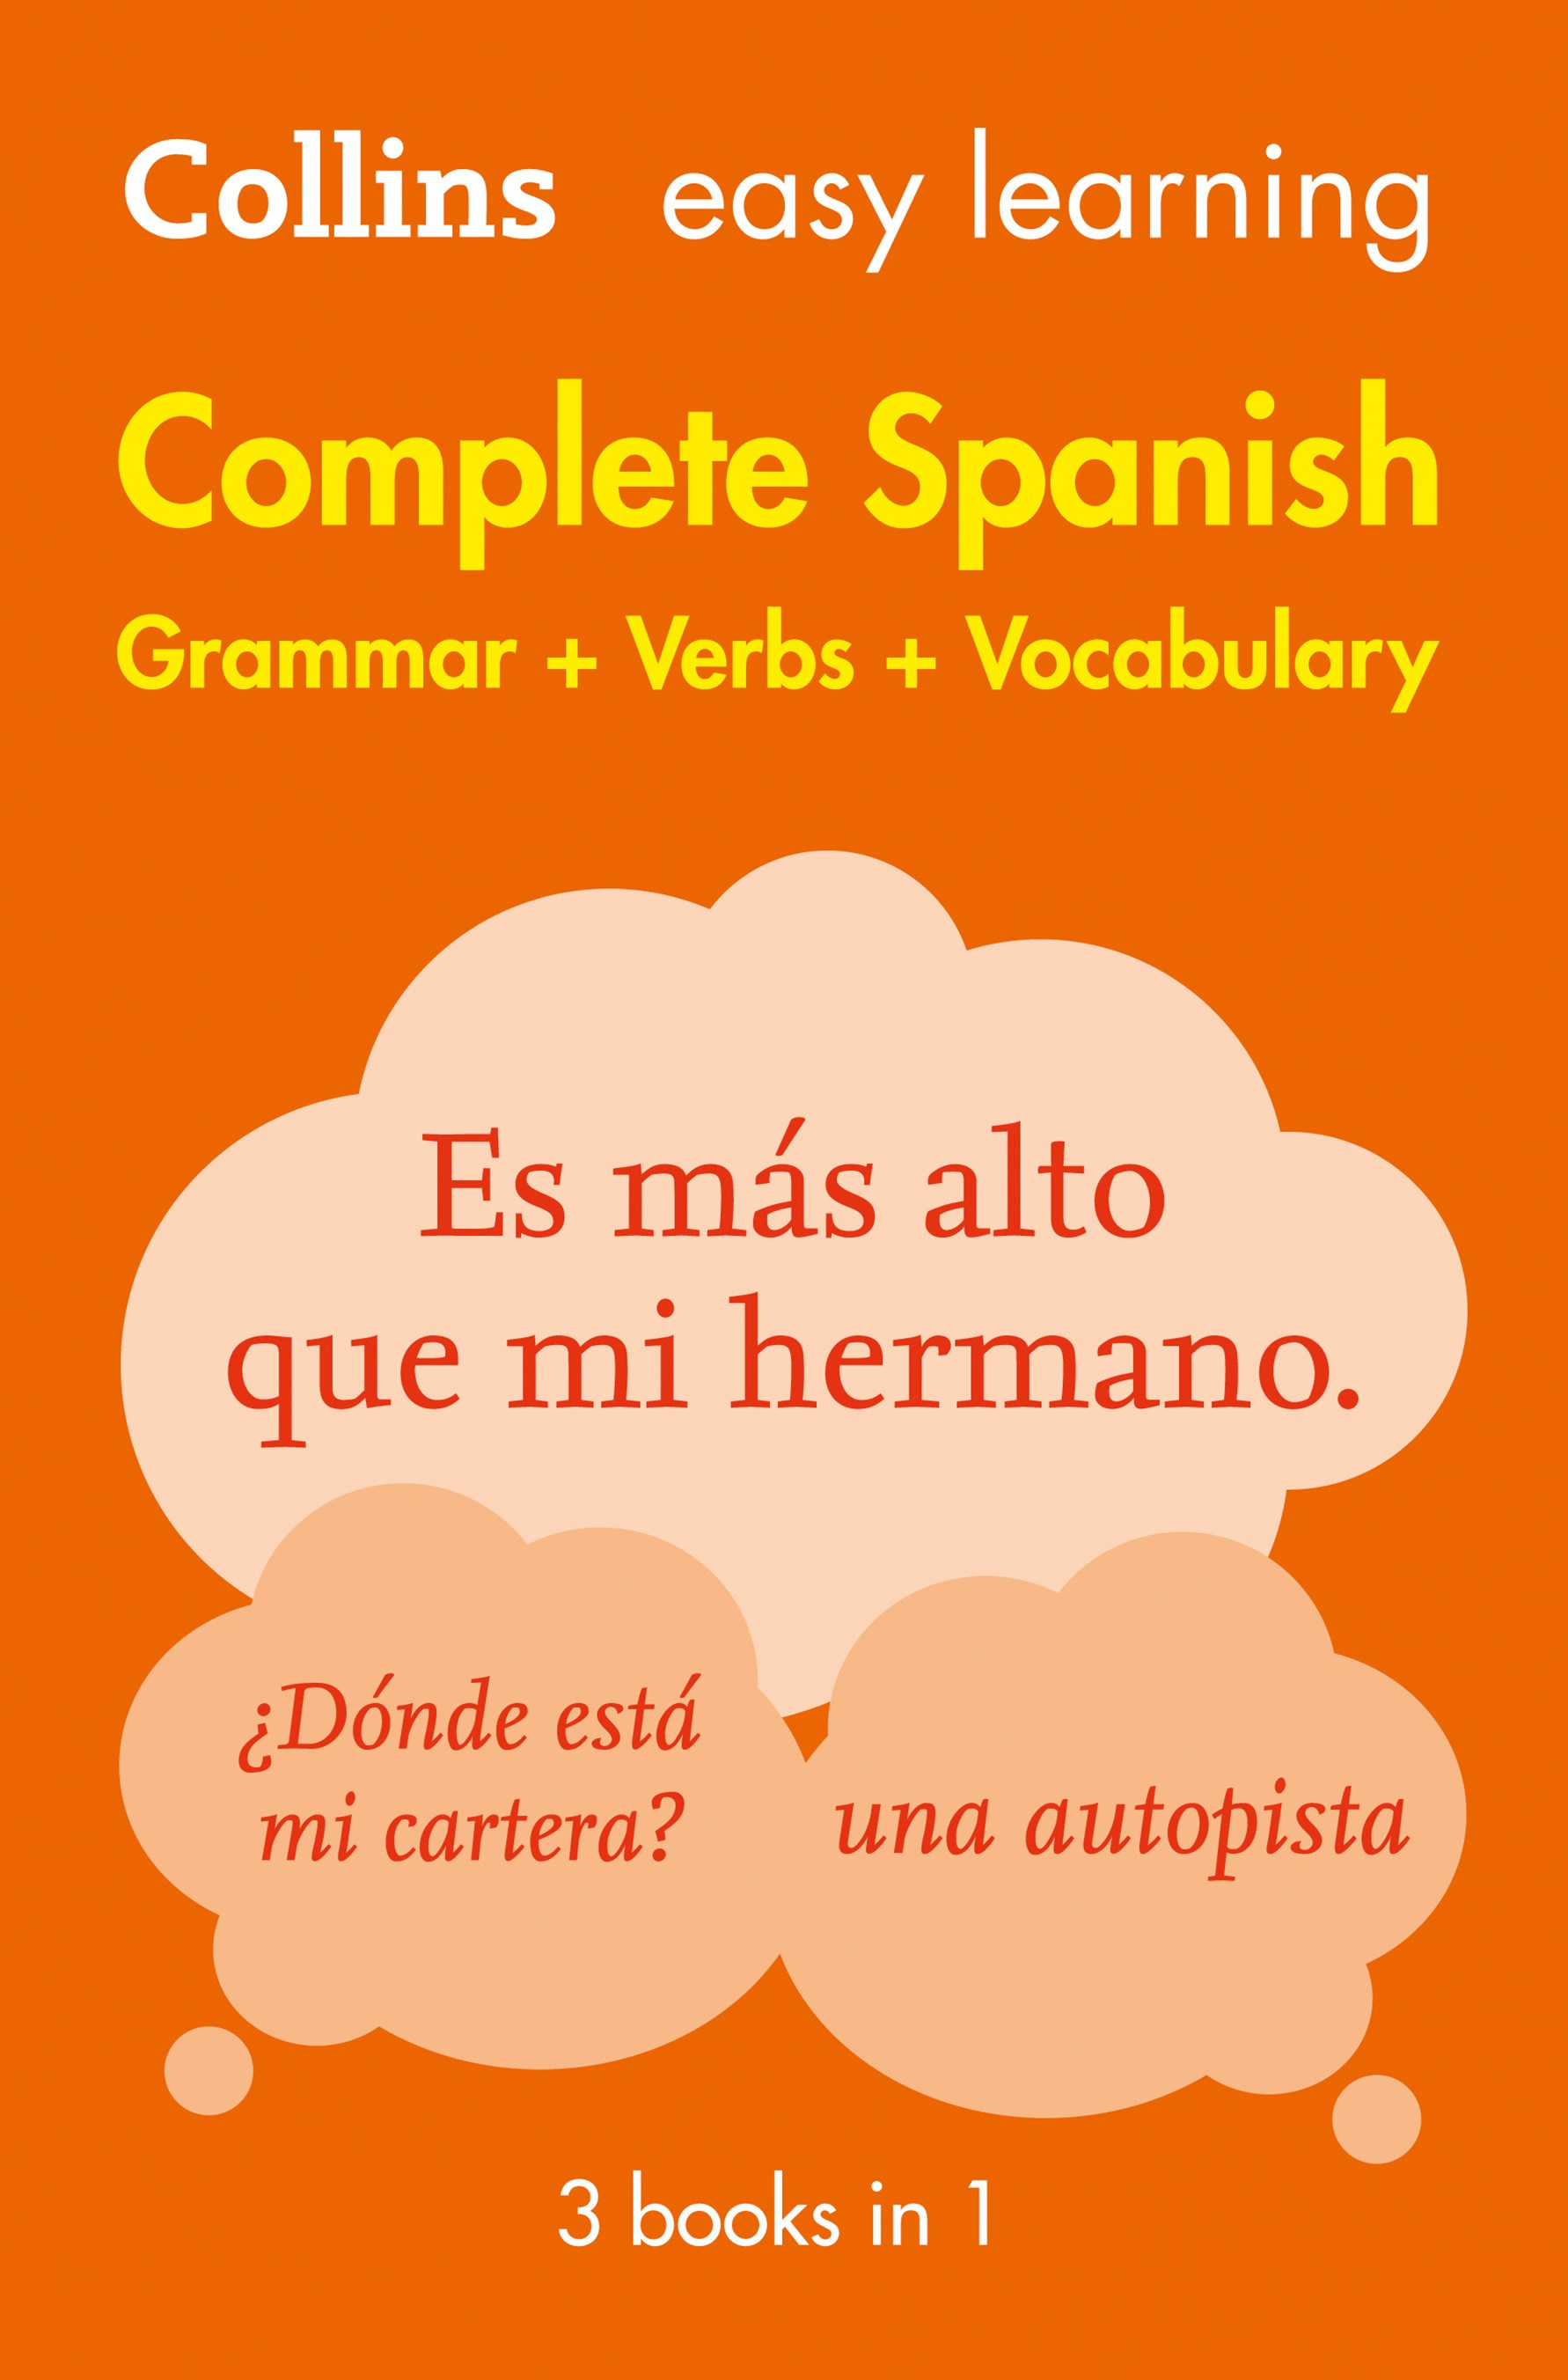 Collins Easy Learning Complete Spanish Grammar, Verbs And Vocabulary (3 Books In 1) [2nd Edition]